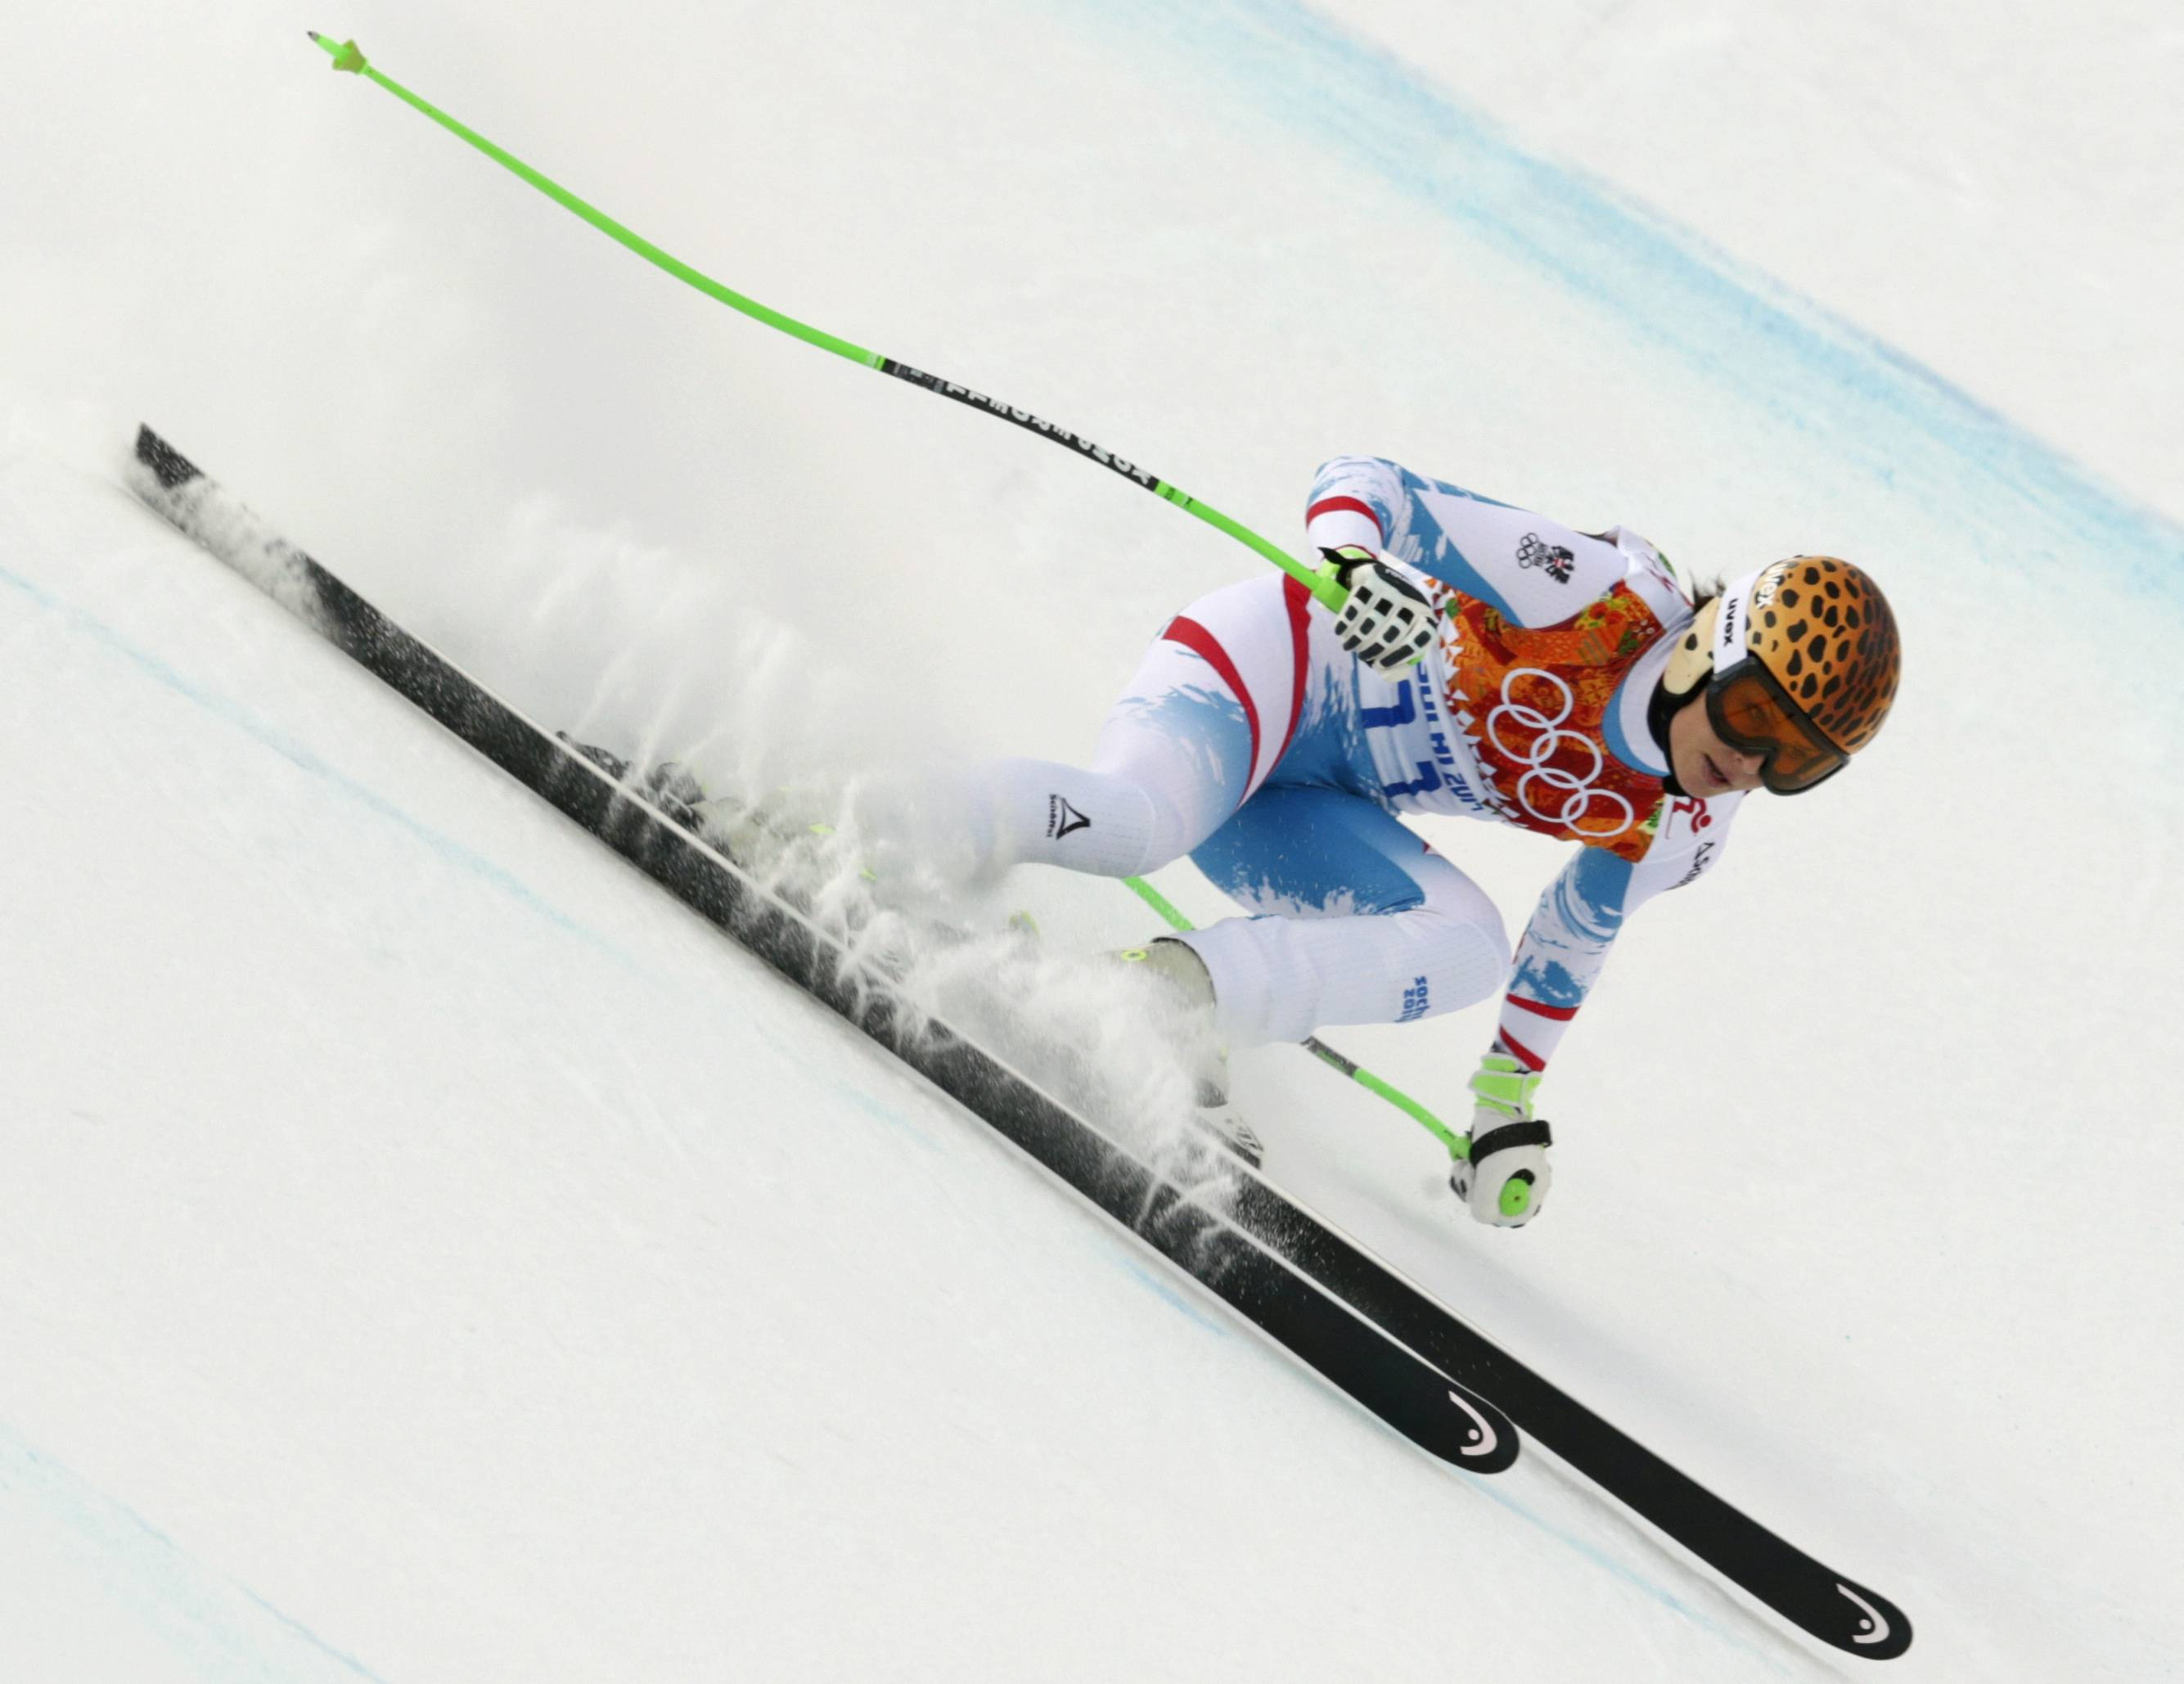 Austria's Anna Fenninger makes a turn during the downhill portion of the women's supercombined.